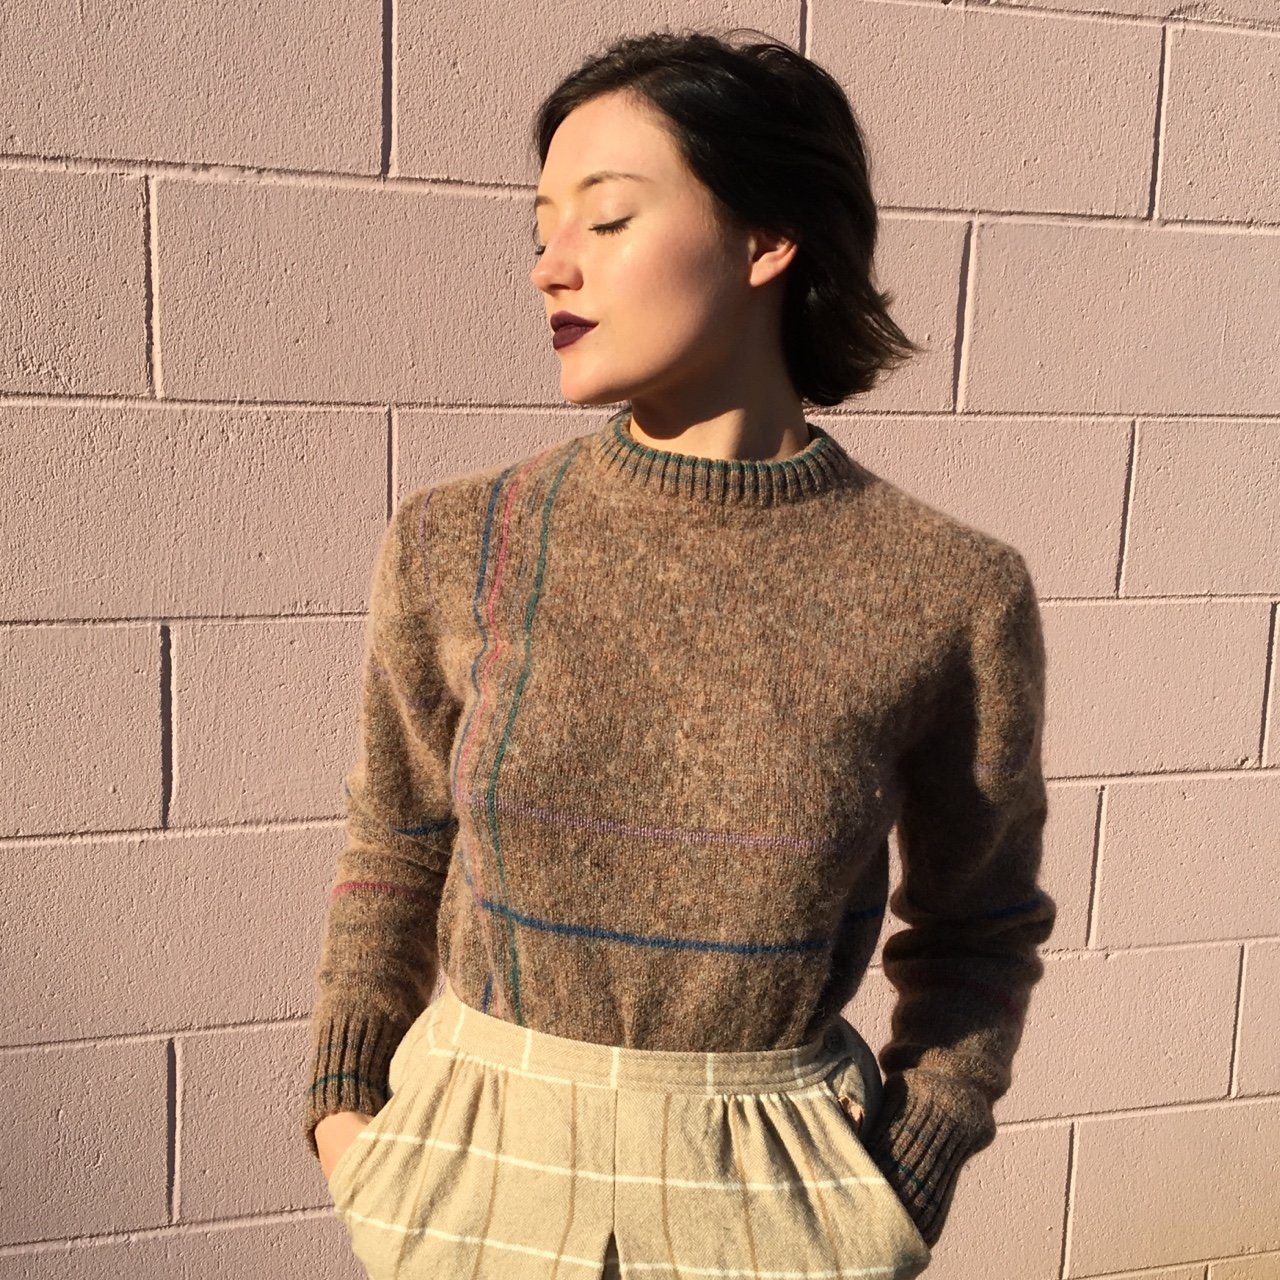 cf460dff2b2 Vintage wool sweater. Pastel stripes intersect for a very is - Depop